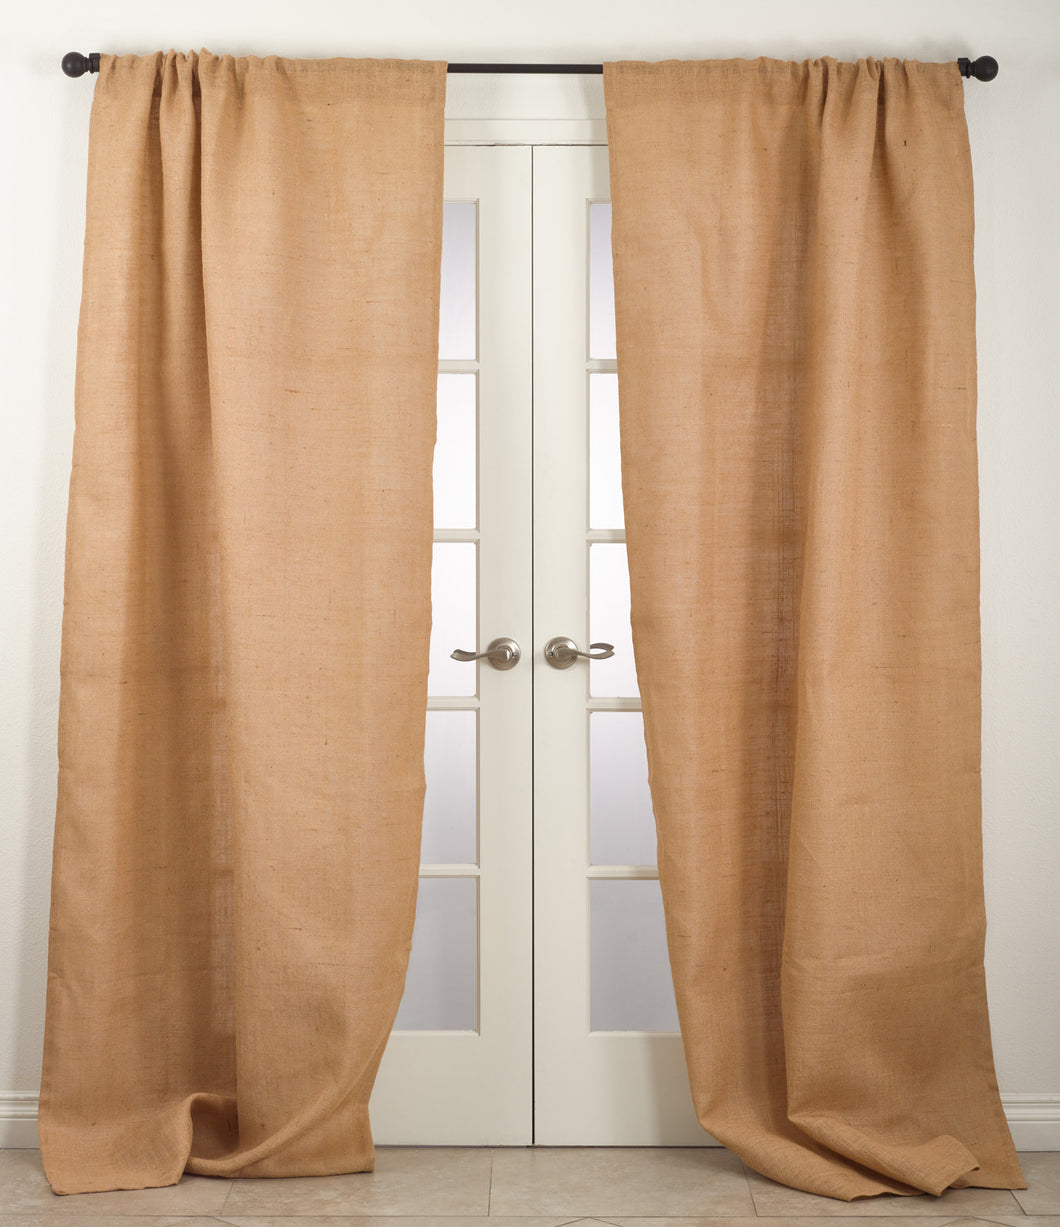 Blaine Burlap Curtain Panels